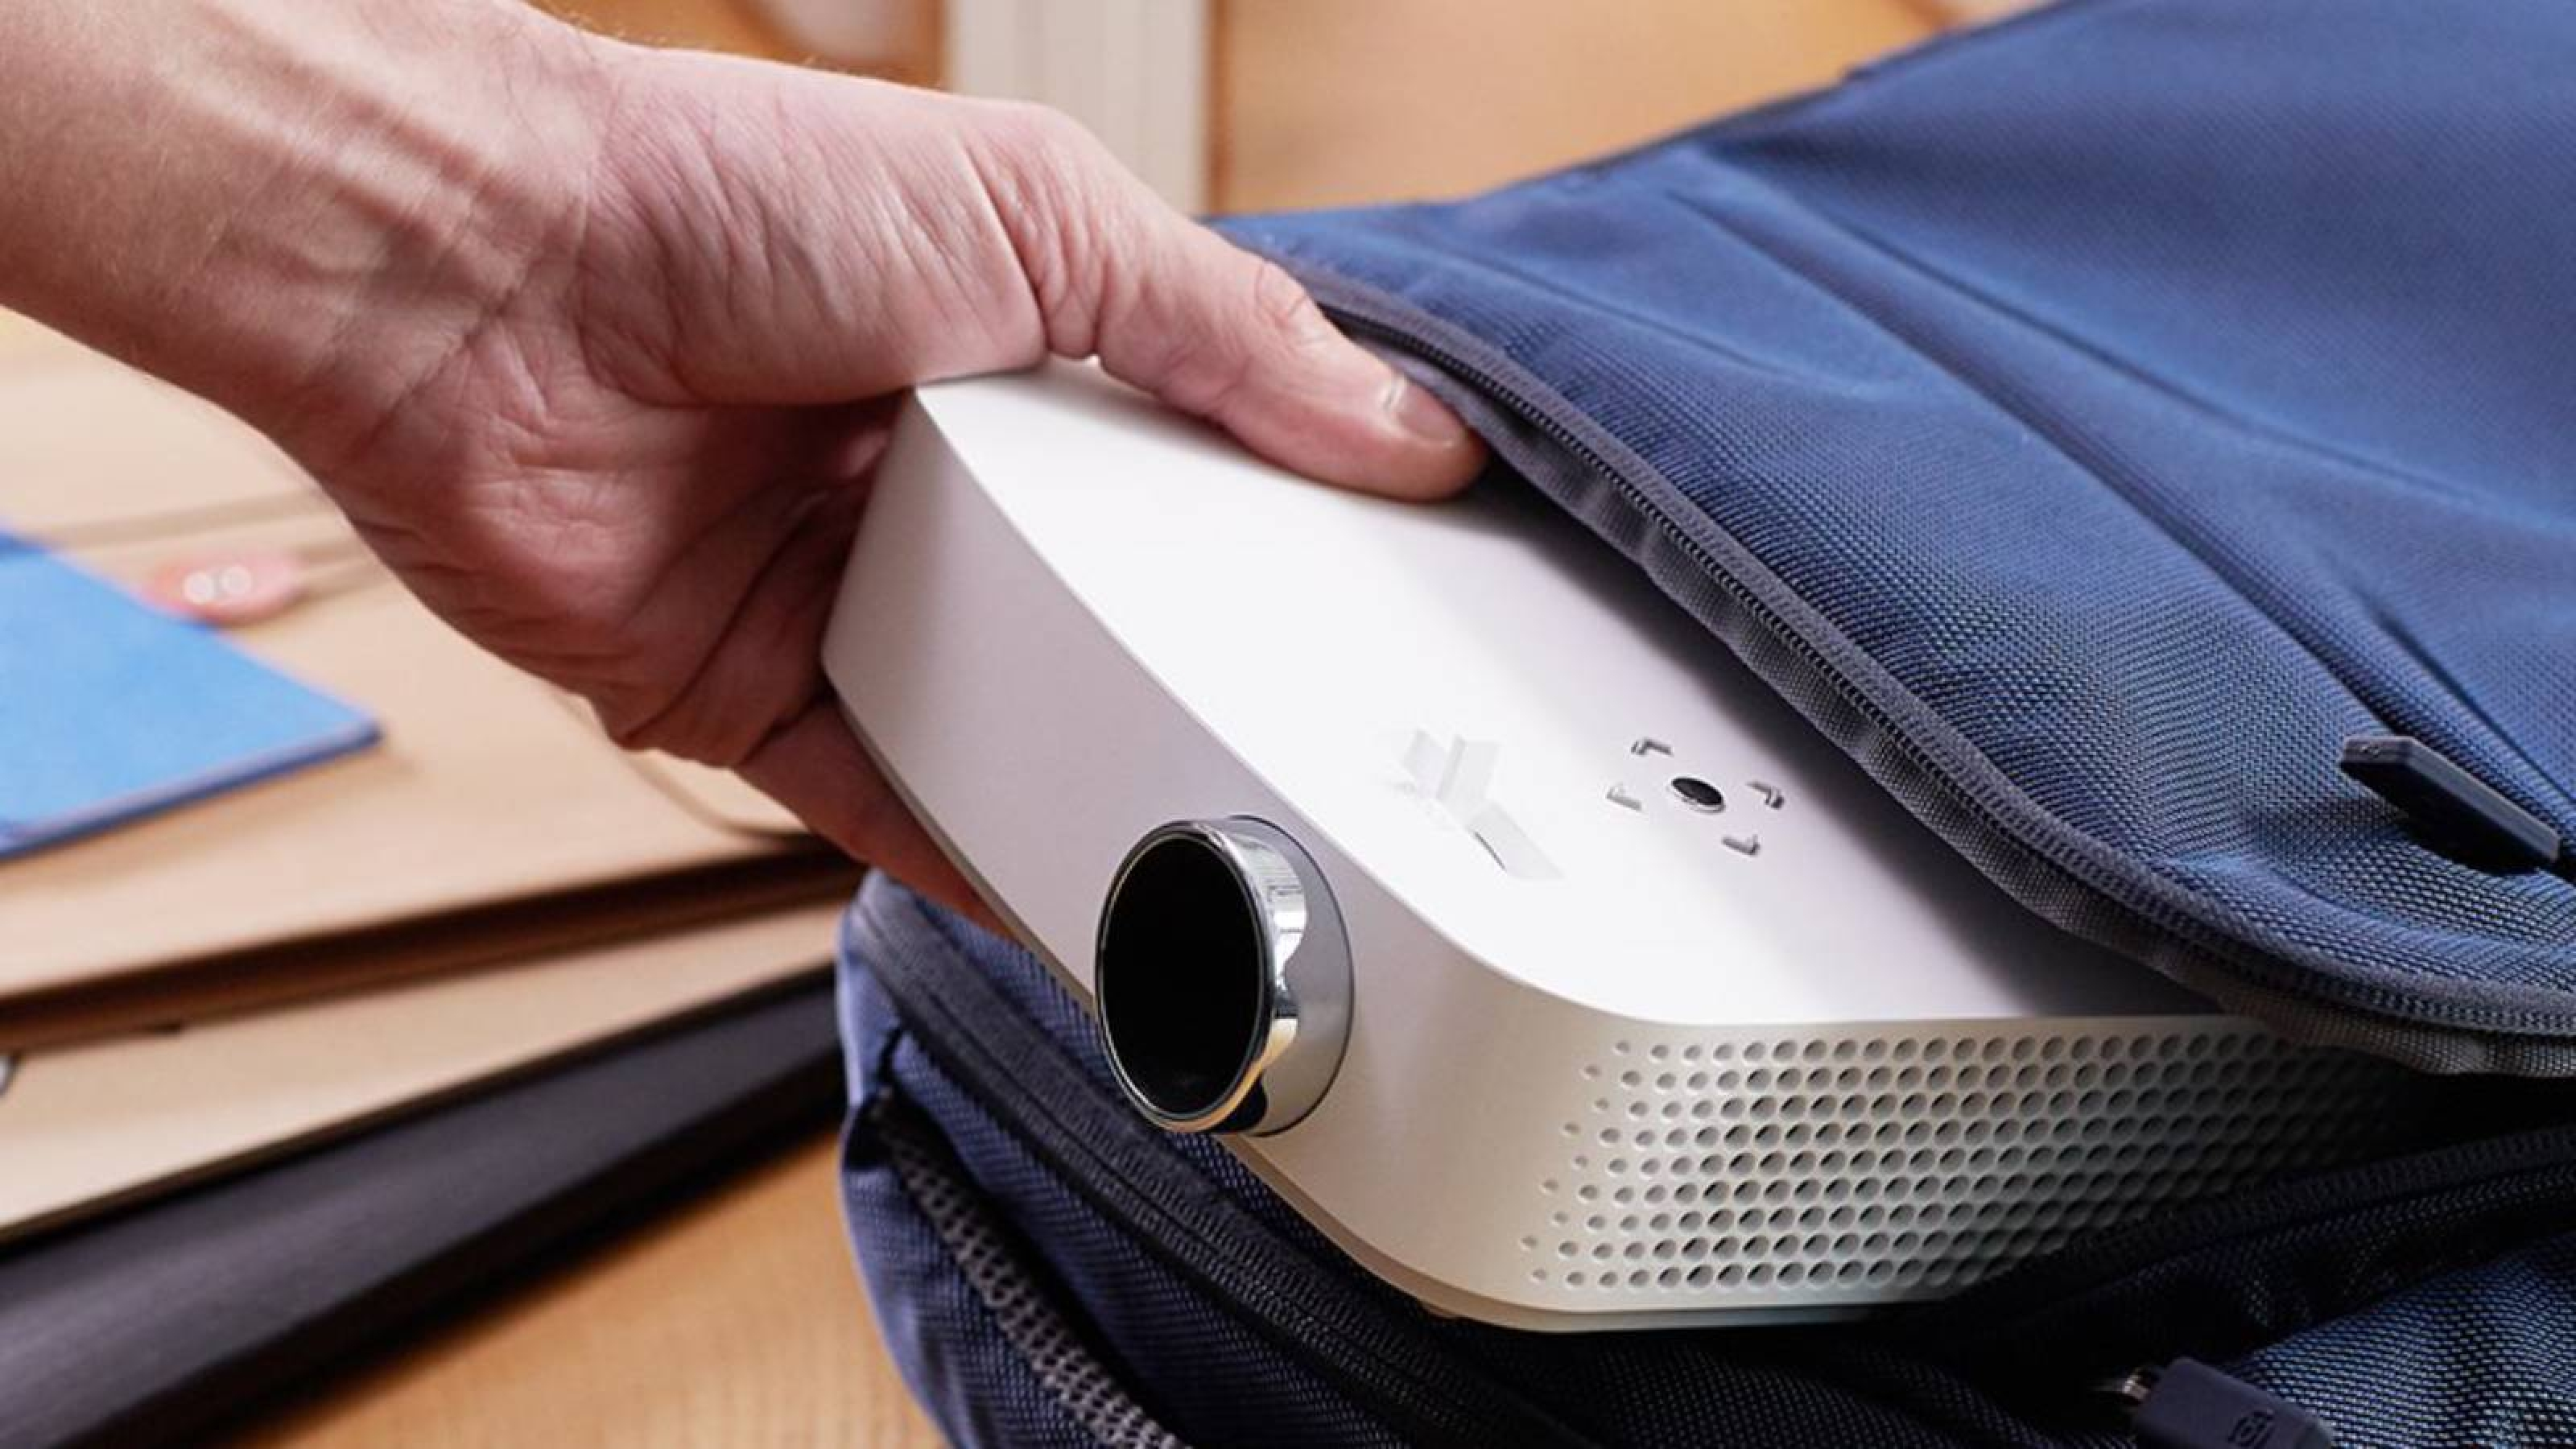 The Best Portable Projectors